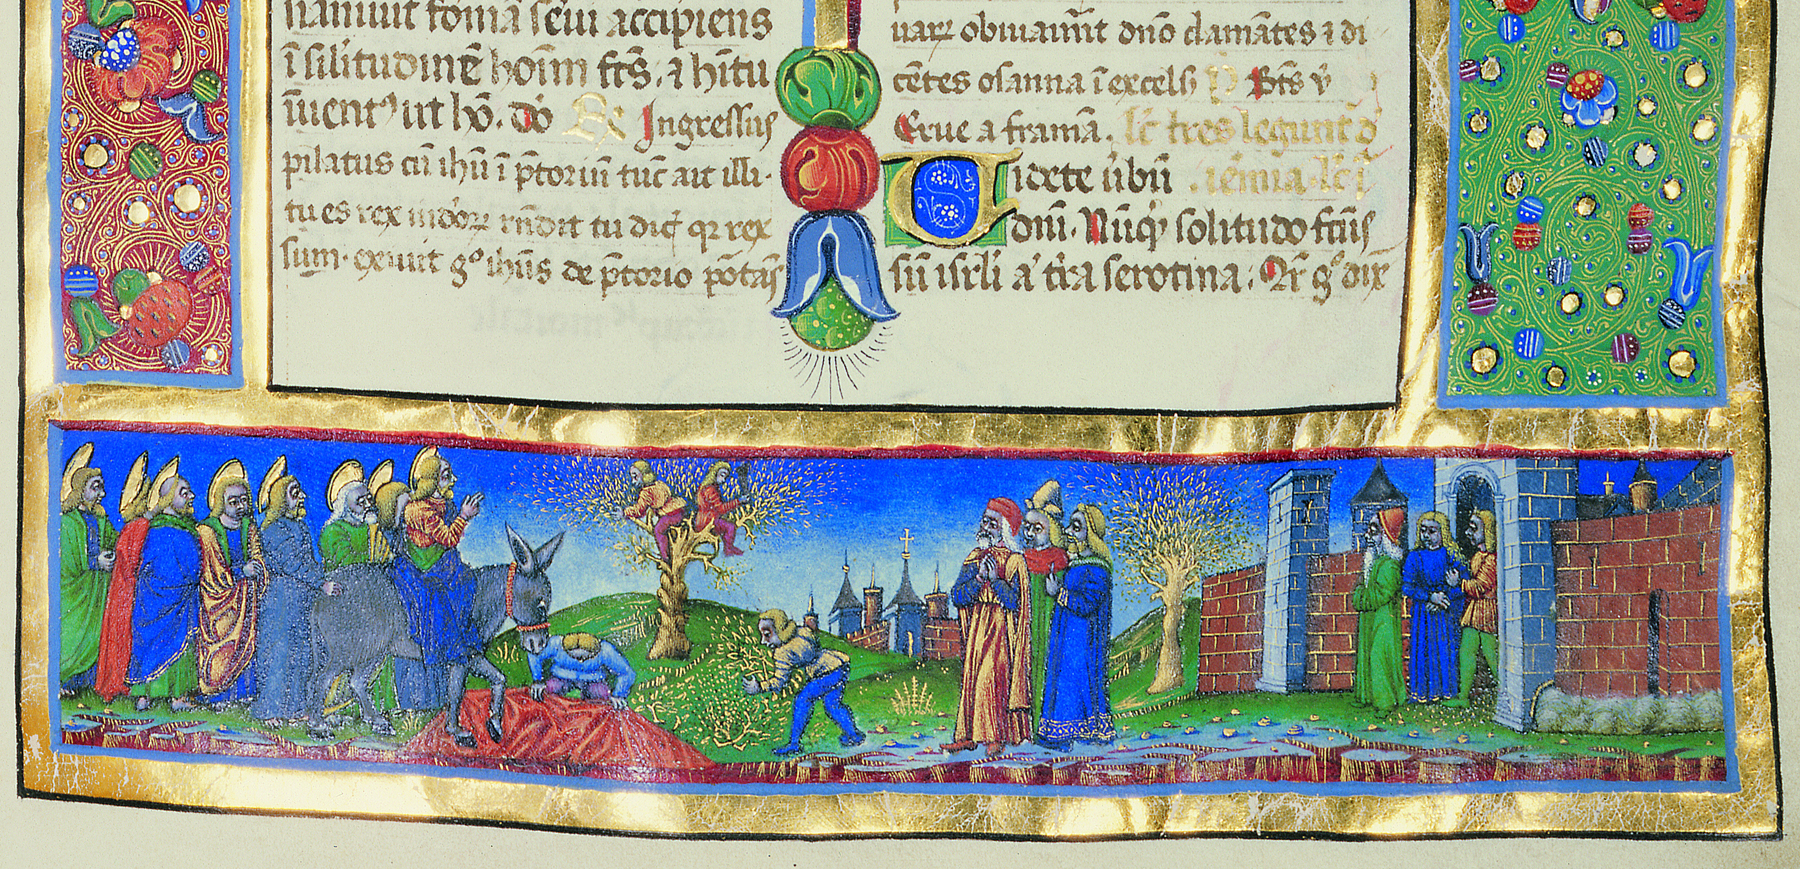 Main work made in Buda by Francesco Castello of Milan was the breviary of Domokos Kálmáncsehi, Provost of Székesfehérvár. The image displays Christ's march into Jerusalem on Palm Sunday celebration. Budapest, NSZL, OSZK Cod. Lat. 446., f. 169r, detail